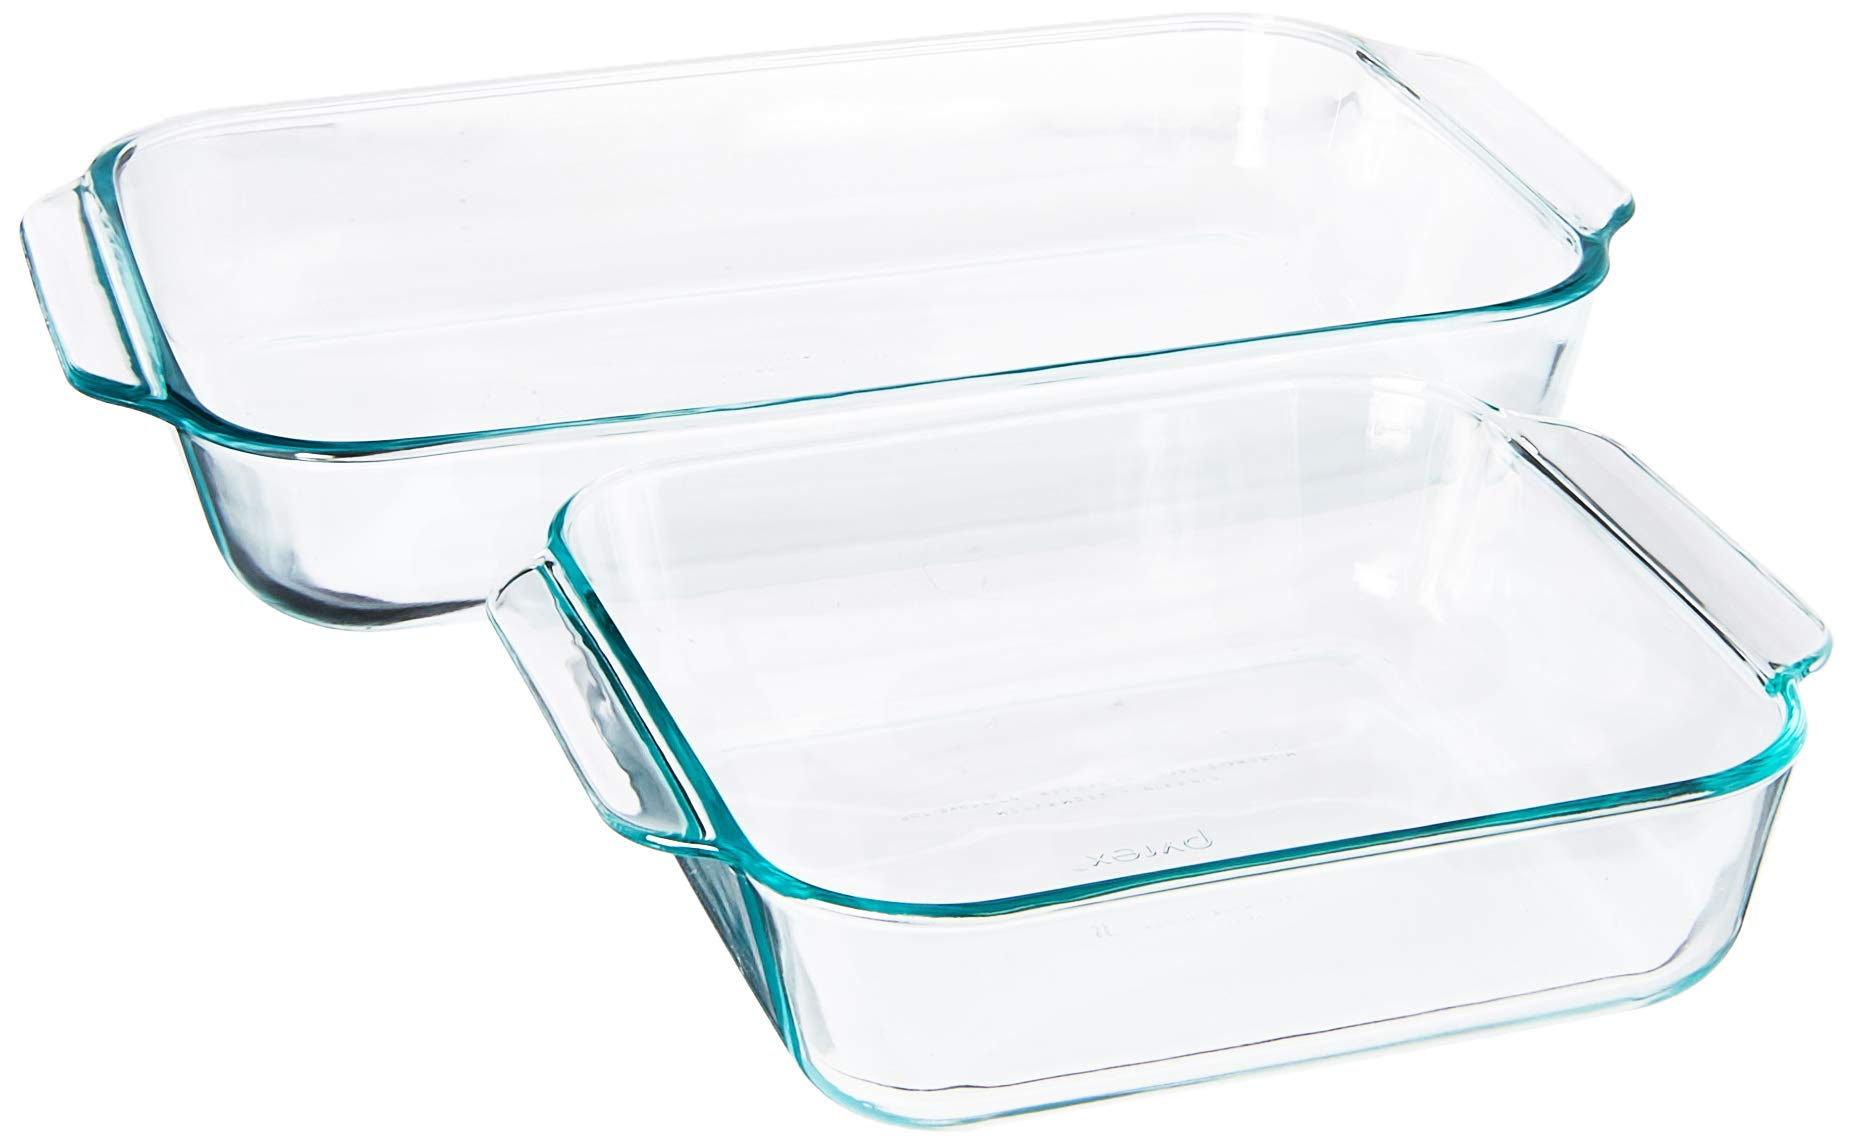 Pyrex SYNCHKG106070 2Piece Basics Value Pack1-Basics 8''/2 dish1-Basics 3 Quart Oblong Bake Dish, 2.2, clear by Pyrex